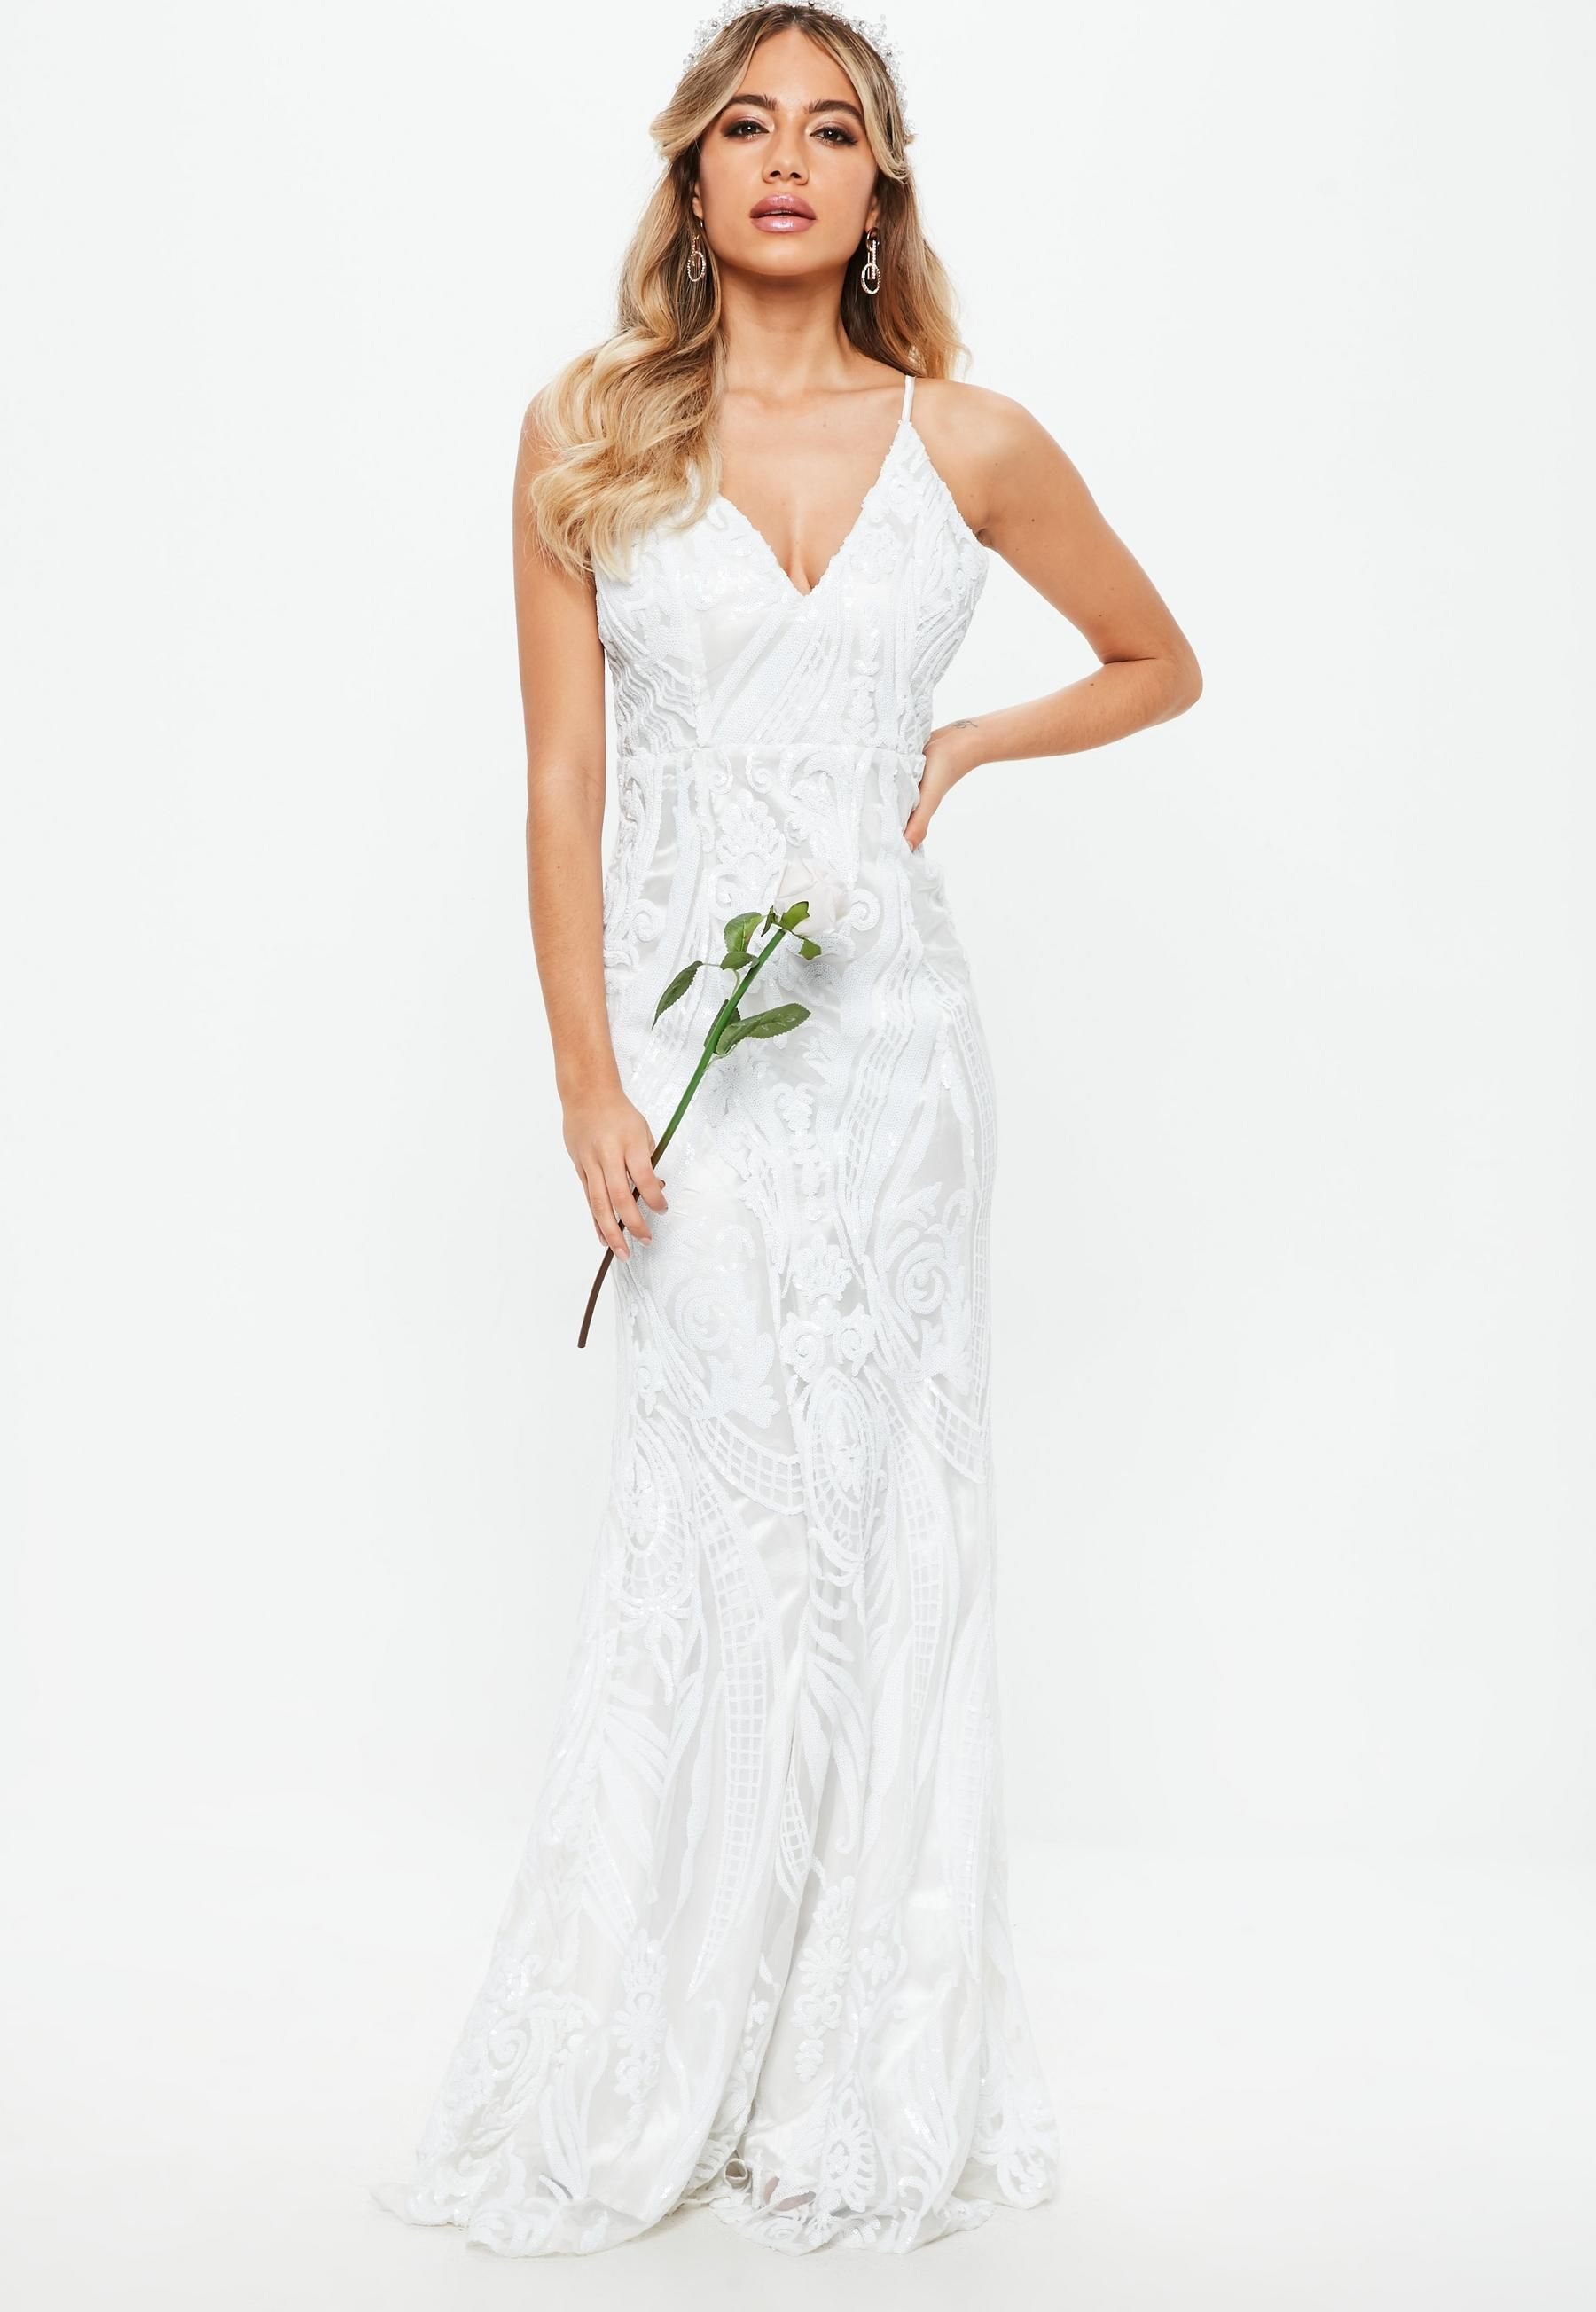 Bridal White Strappy Sequin Embellished Fishtail Maxi